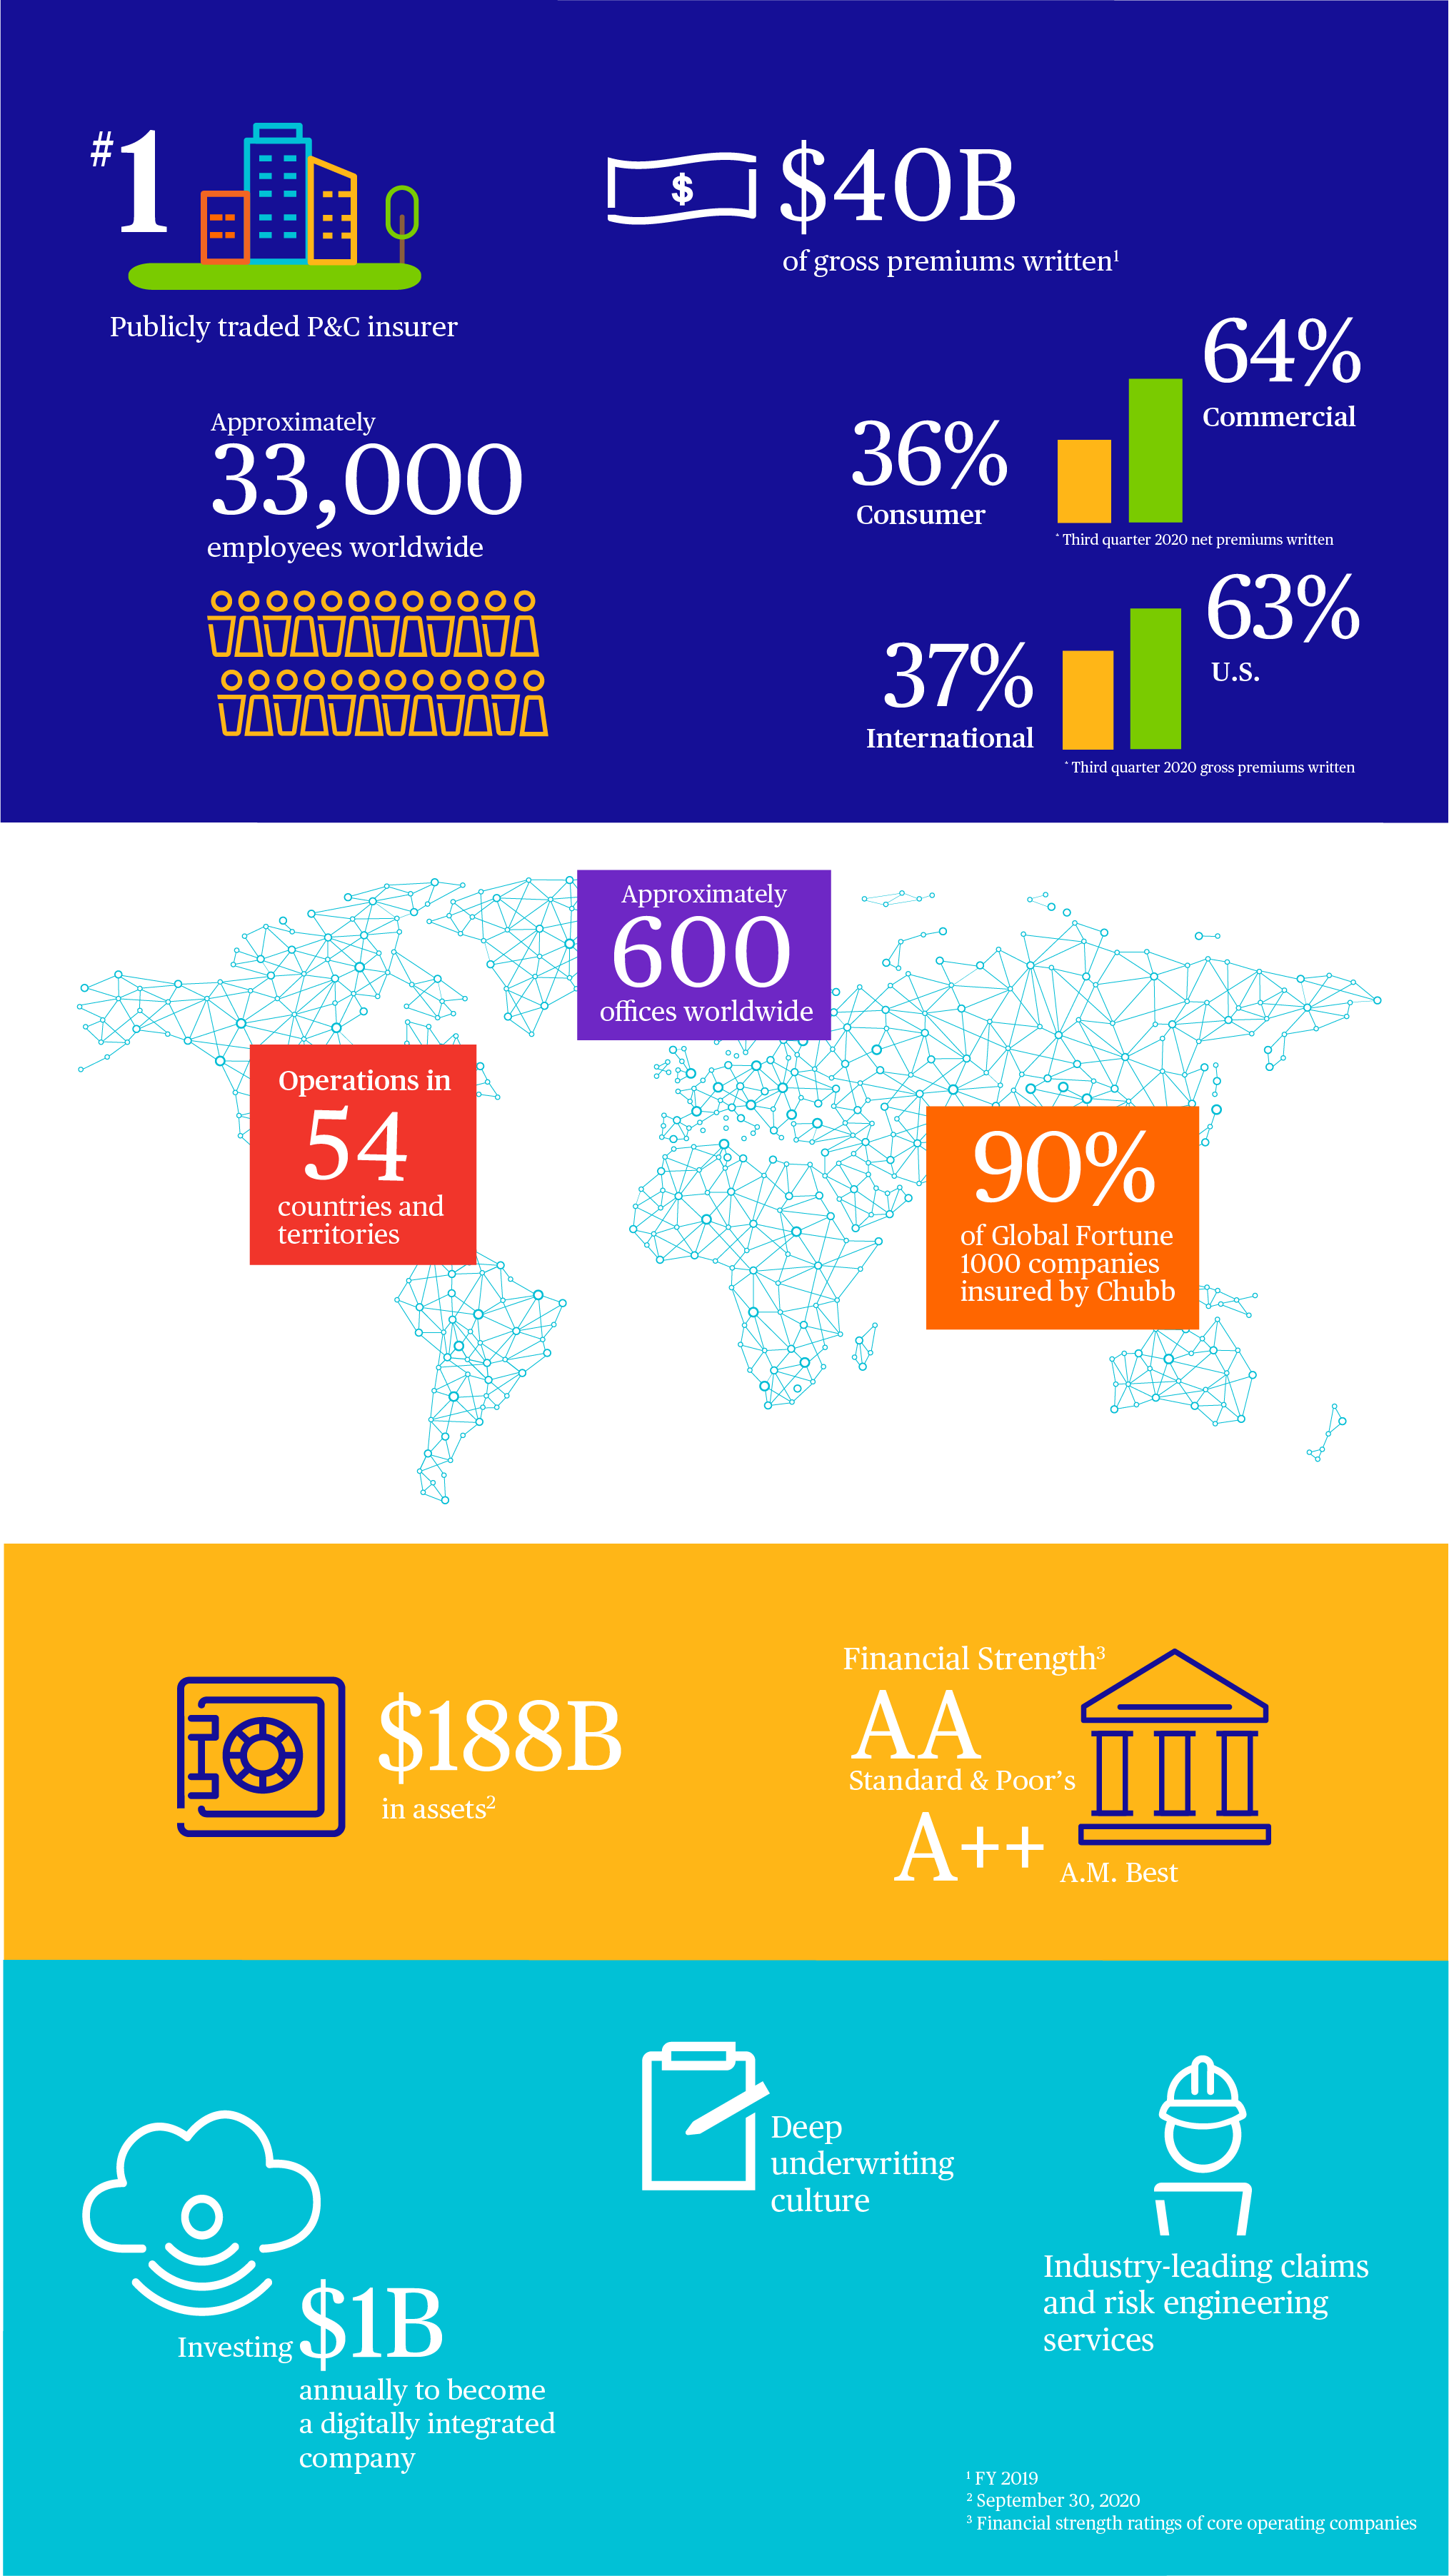 Infographic providing an overview of Chubb's financial performance and company statistics